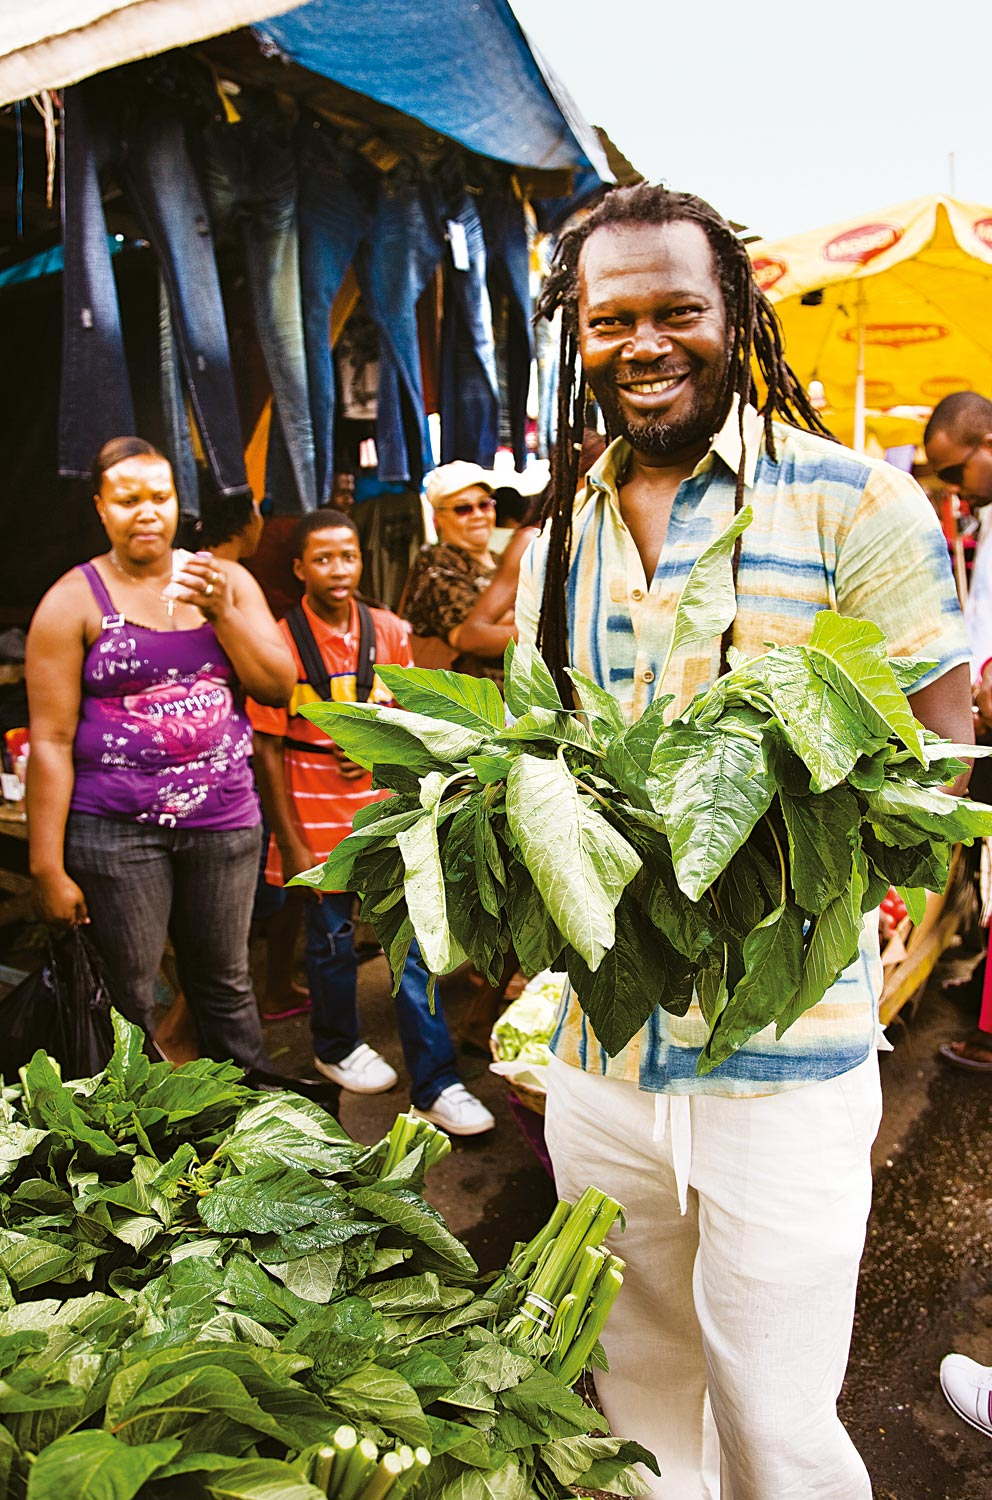 Photo taken from Caribbean Food Made Easy with Levi Roots. Photograph courtesy Octopus Publishing Group/ Chris Terry